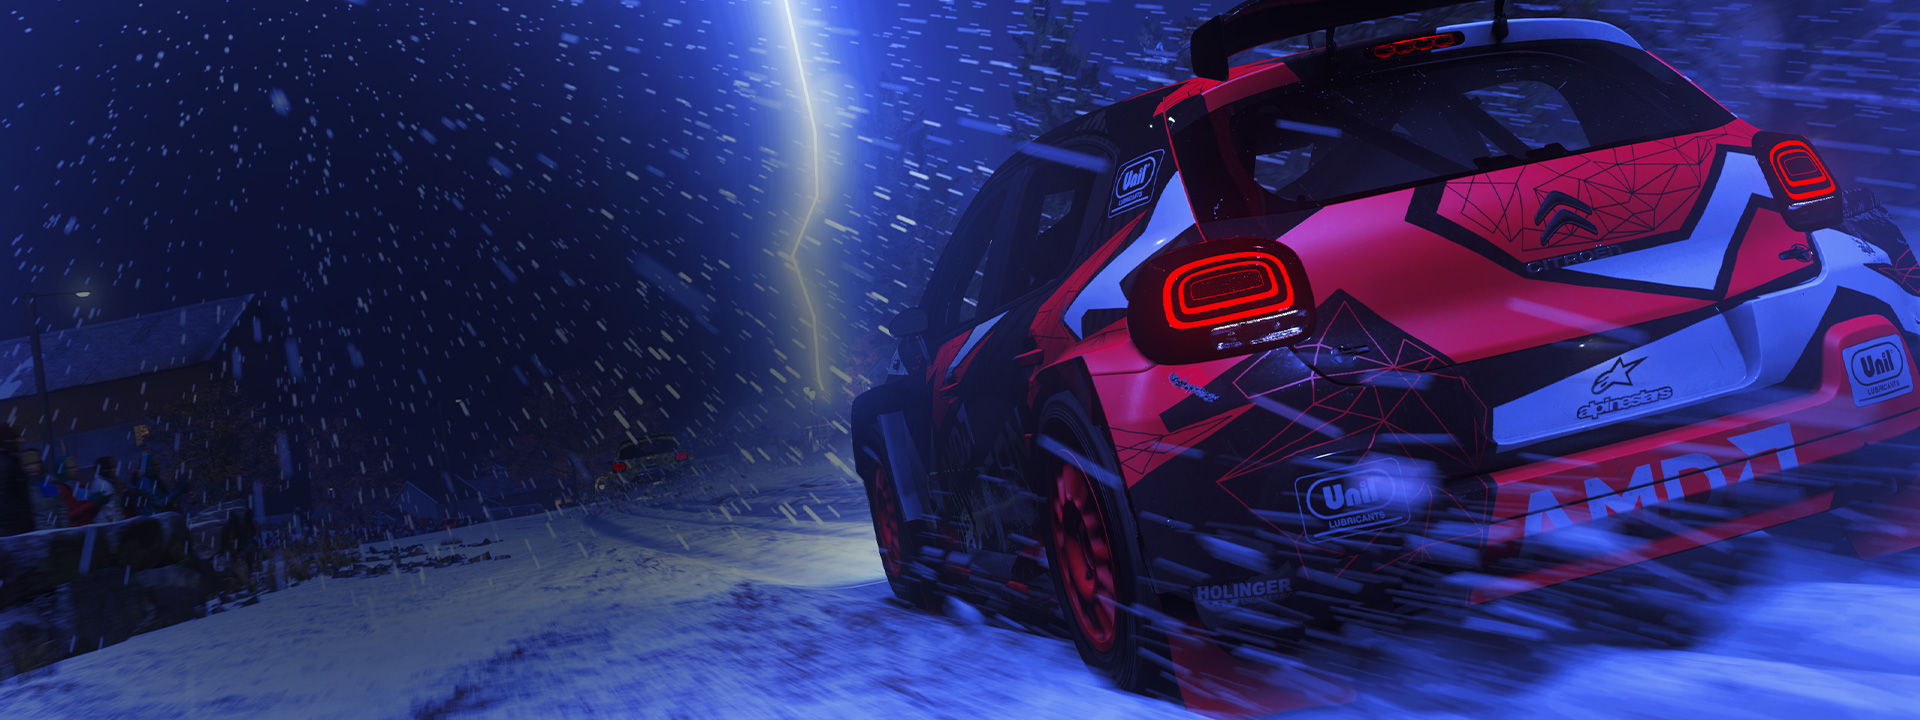 Citroën hatchback with spoiler from DIRT 5 driving in the snow